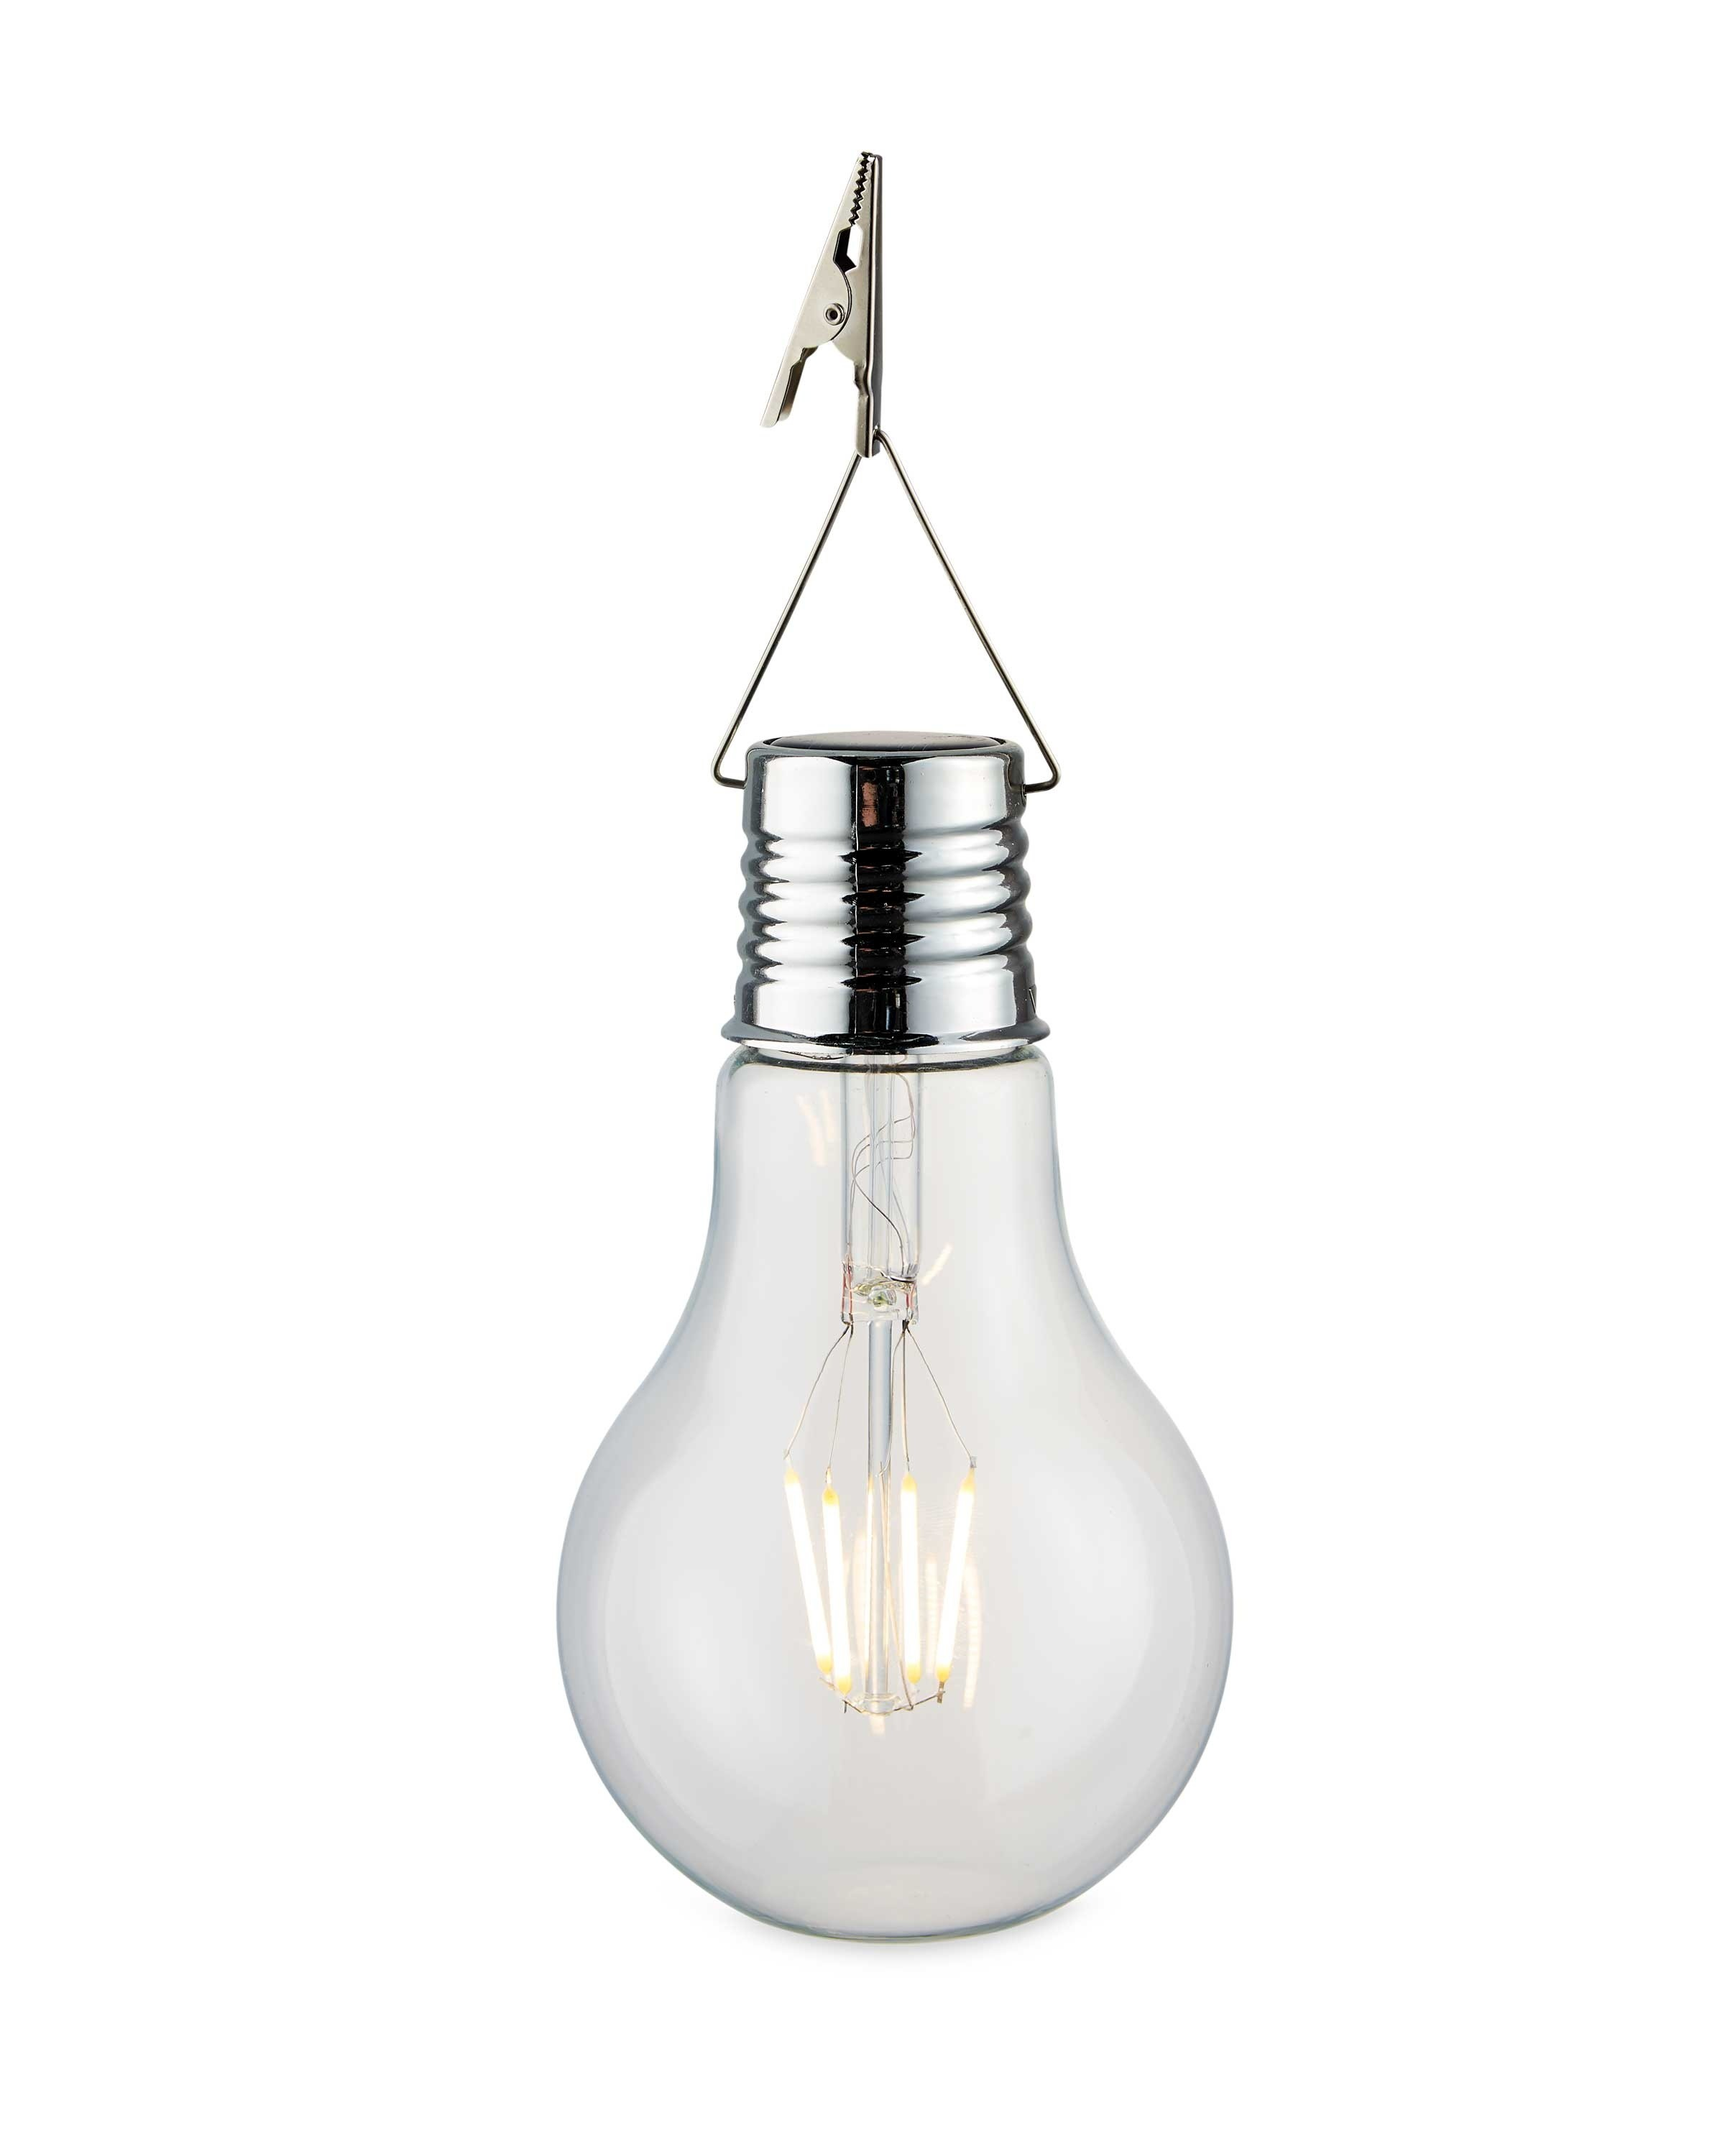 why sink gigaom is heat flat of from design led right and slimstyle philips this lightbulb left future with bulb the light a to an